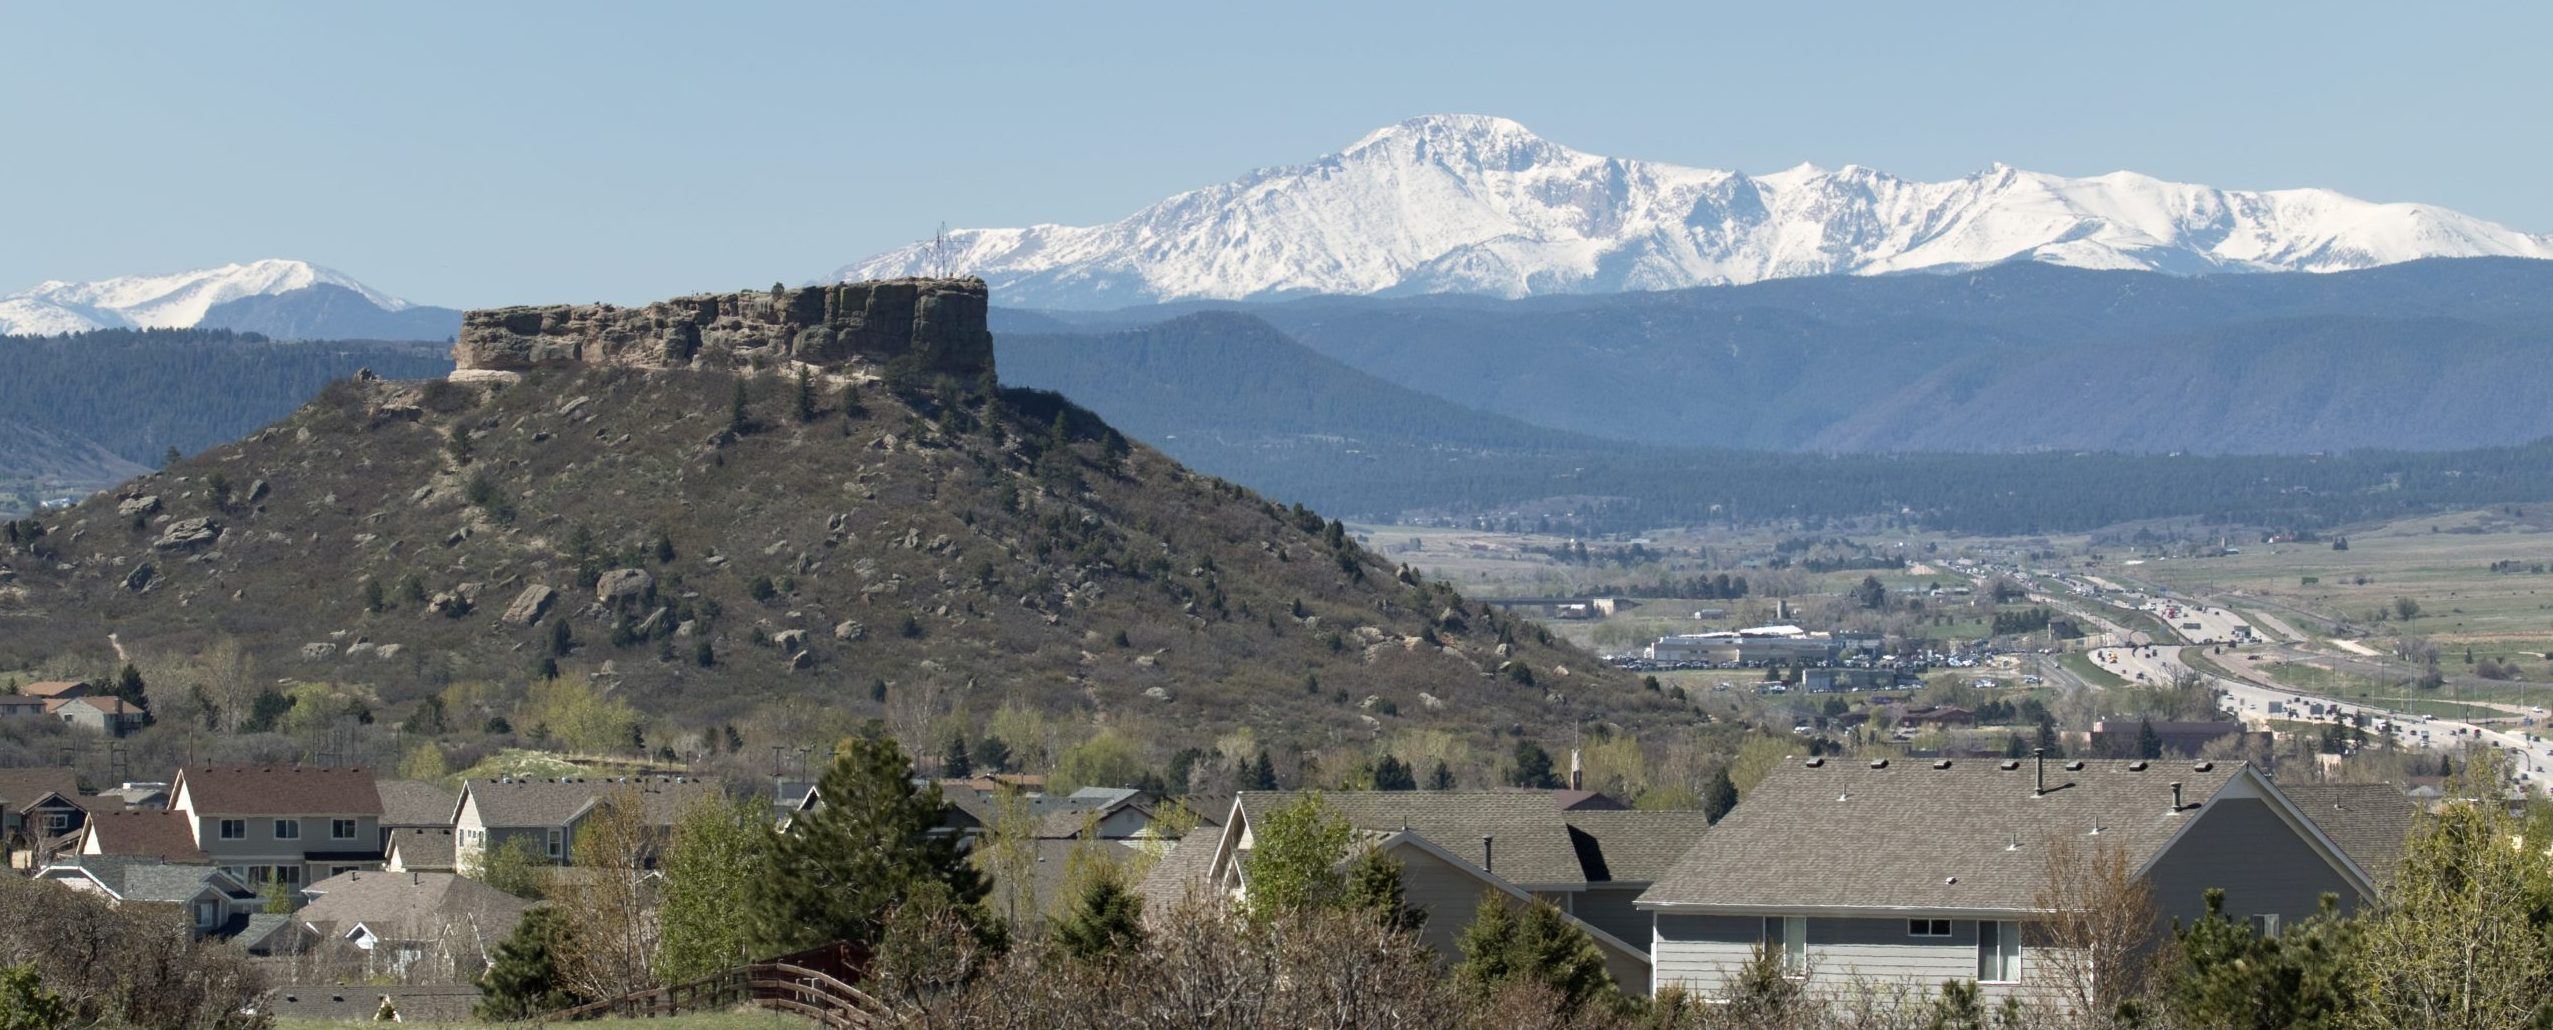 Castle Rock mesa and homes stand in front of a snow covered Pikes Peak with Interstate 25 winding its way to the snowy Rocky Mountains, Castle Rock, Colorado.